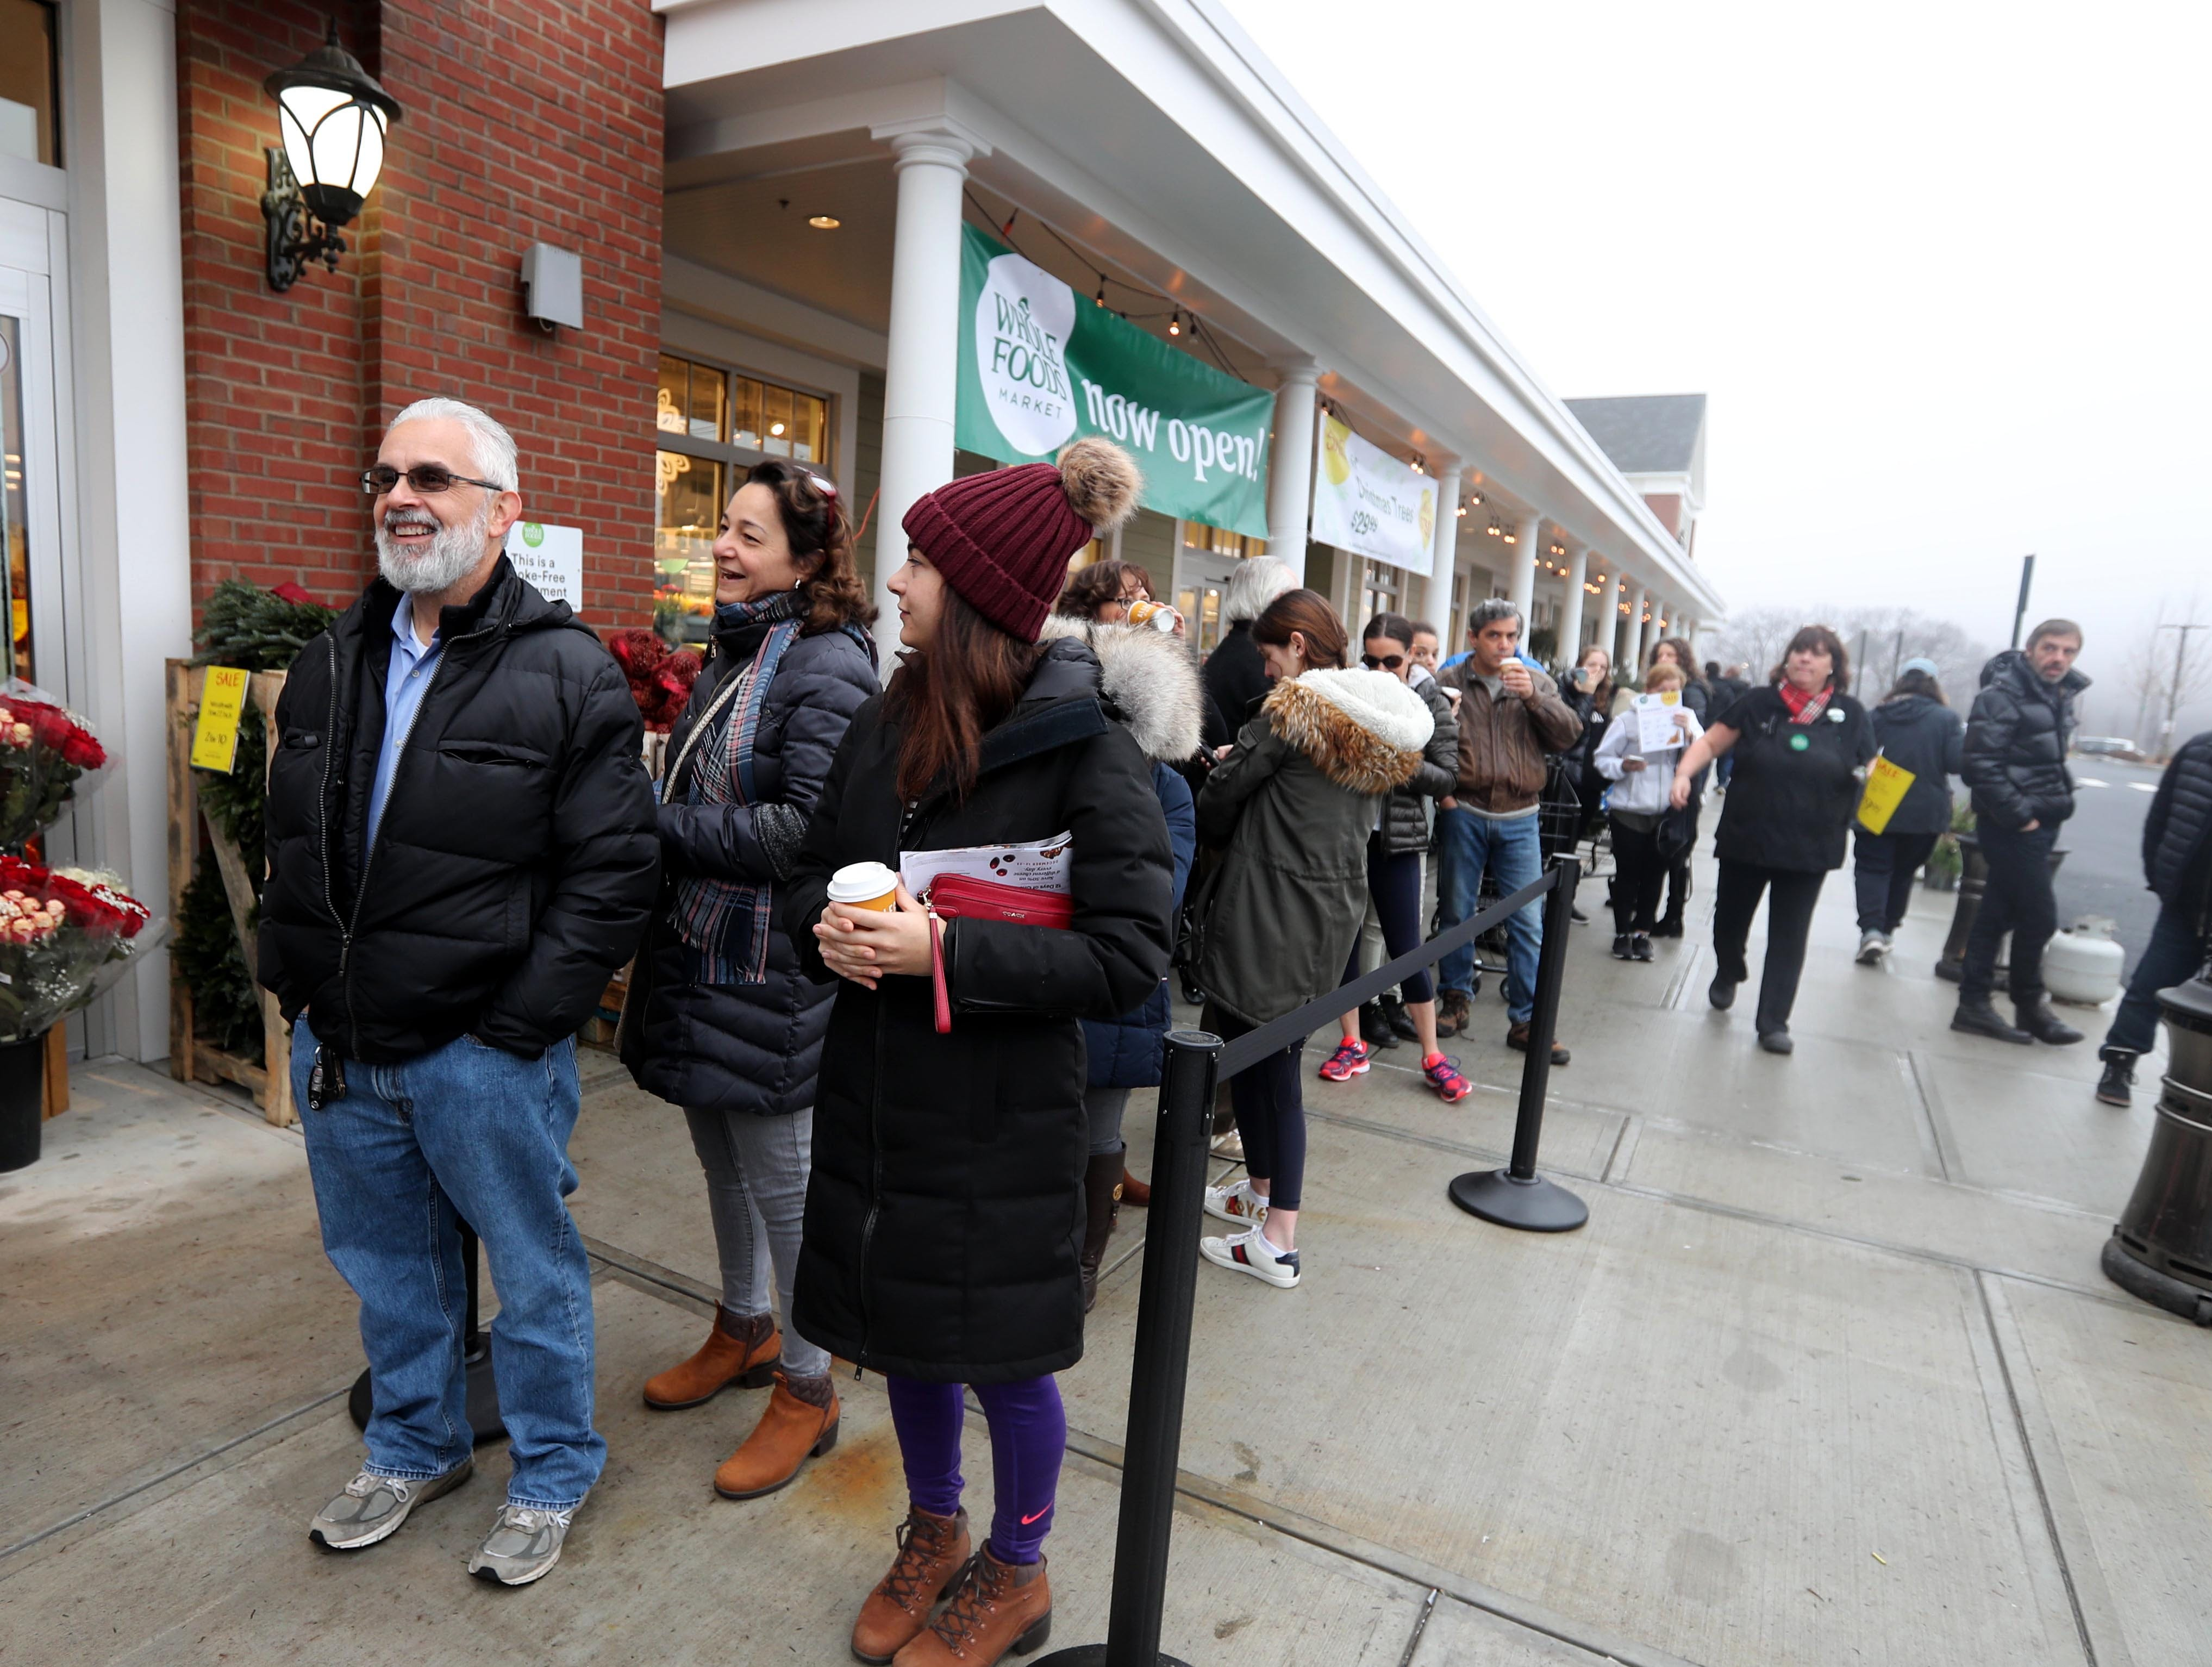 Frank and Stephanie Pate of Pleasantville, along with their daughter Erica, were first in line as shoppers waited outside Whole Foods at Chappaqua Crossing before the store's grand opening Dec. 15, 2018. The 40,000 square foot store opened to shoppers on the site of the formers Readers Digest headquarters. The New Castle Town Board and Planning Board approved a temporary traffic plan for the Route 117-Roaring Brook Road intersection that allowed the store to open.